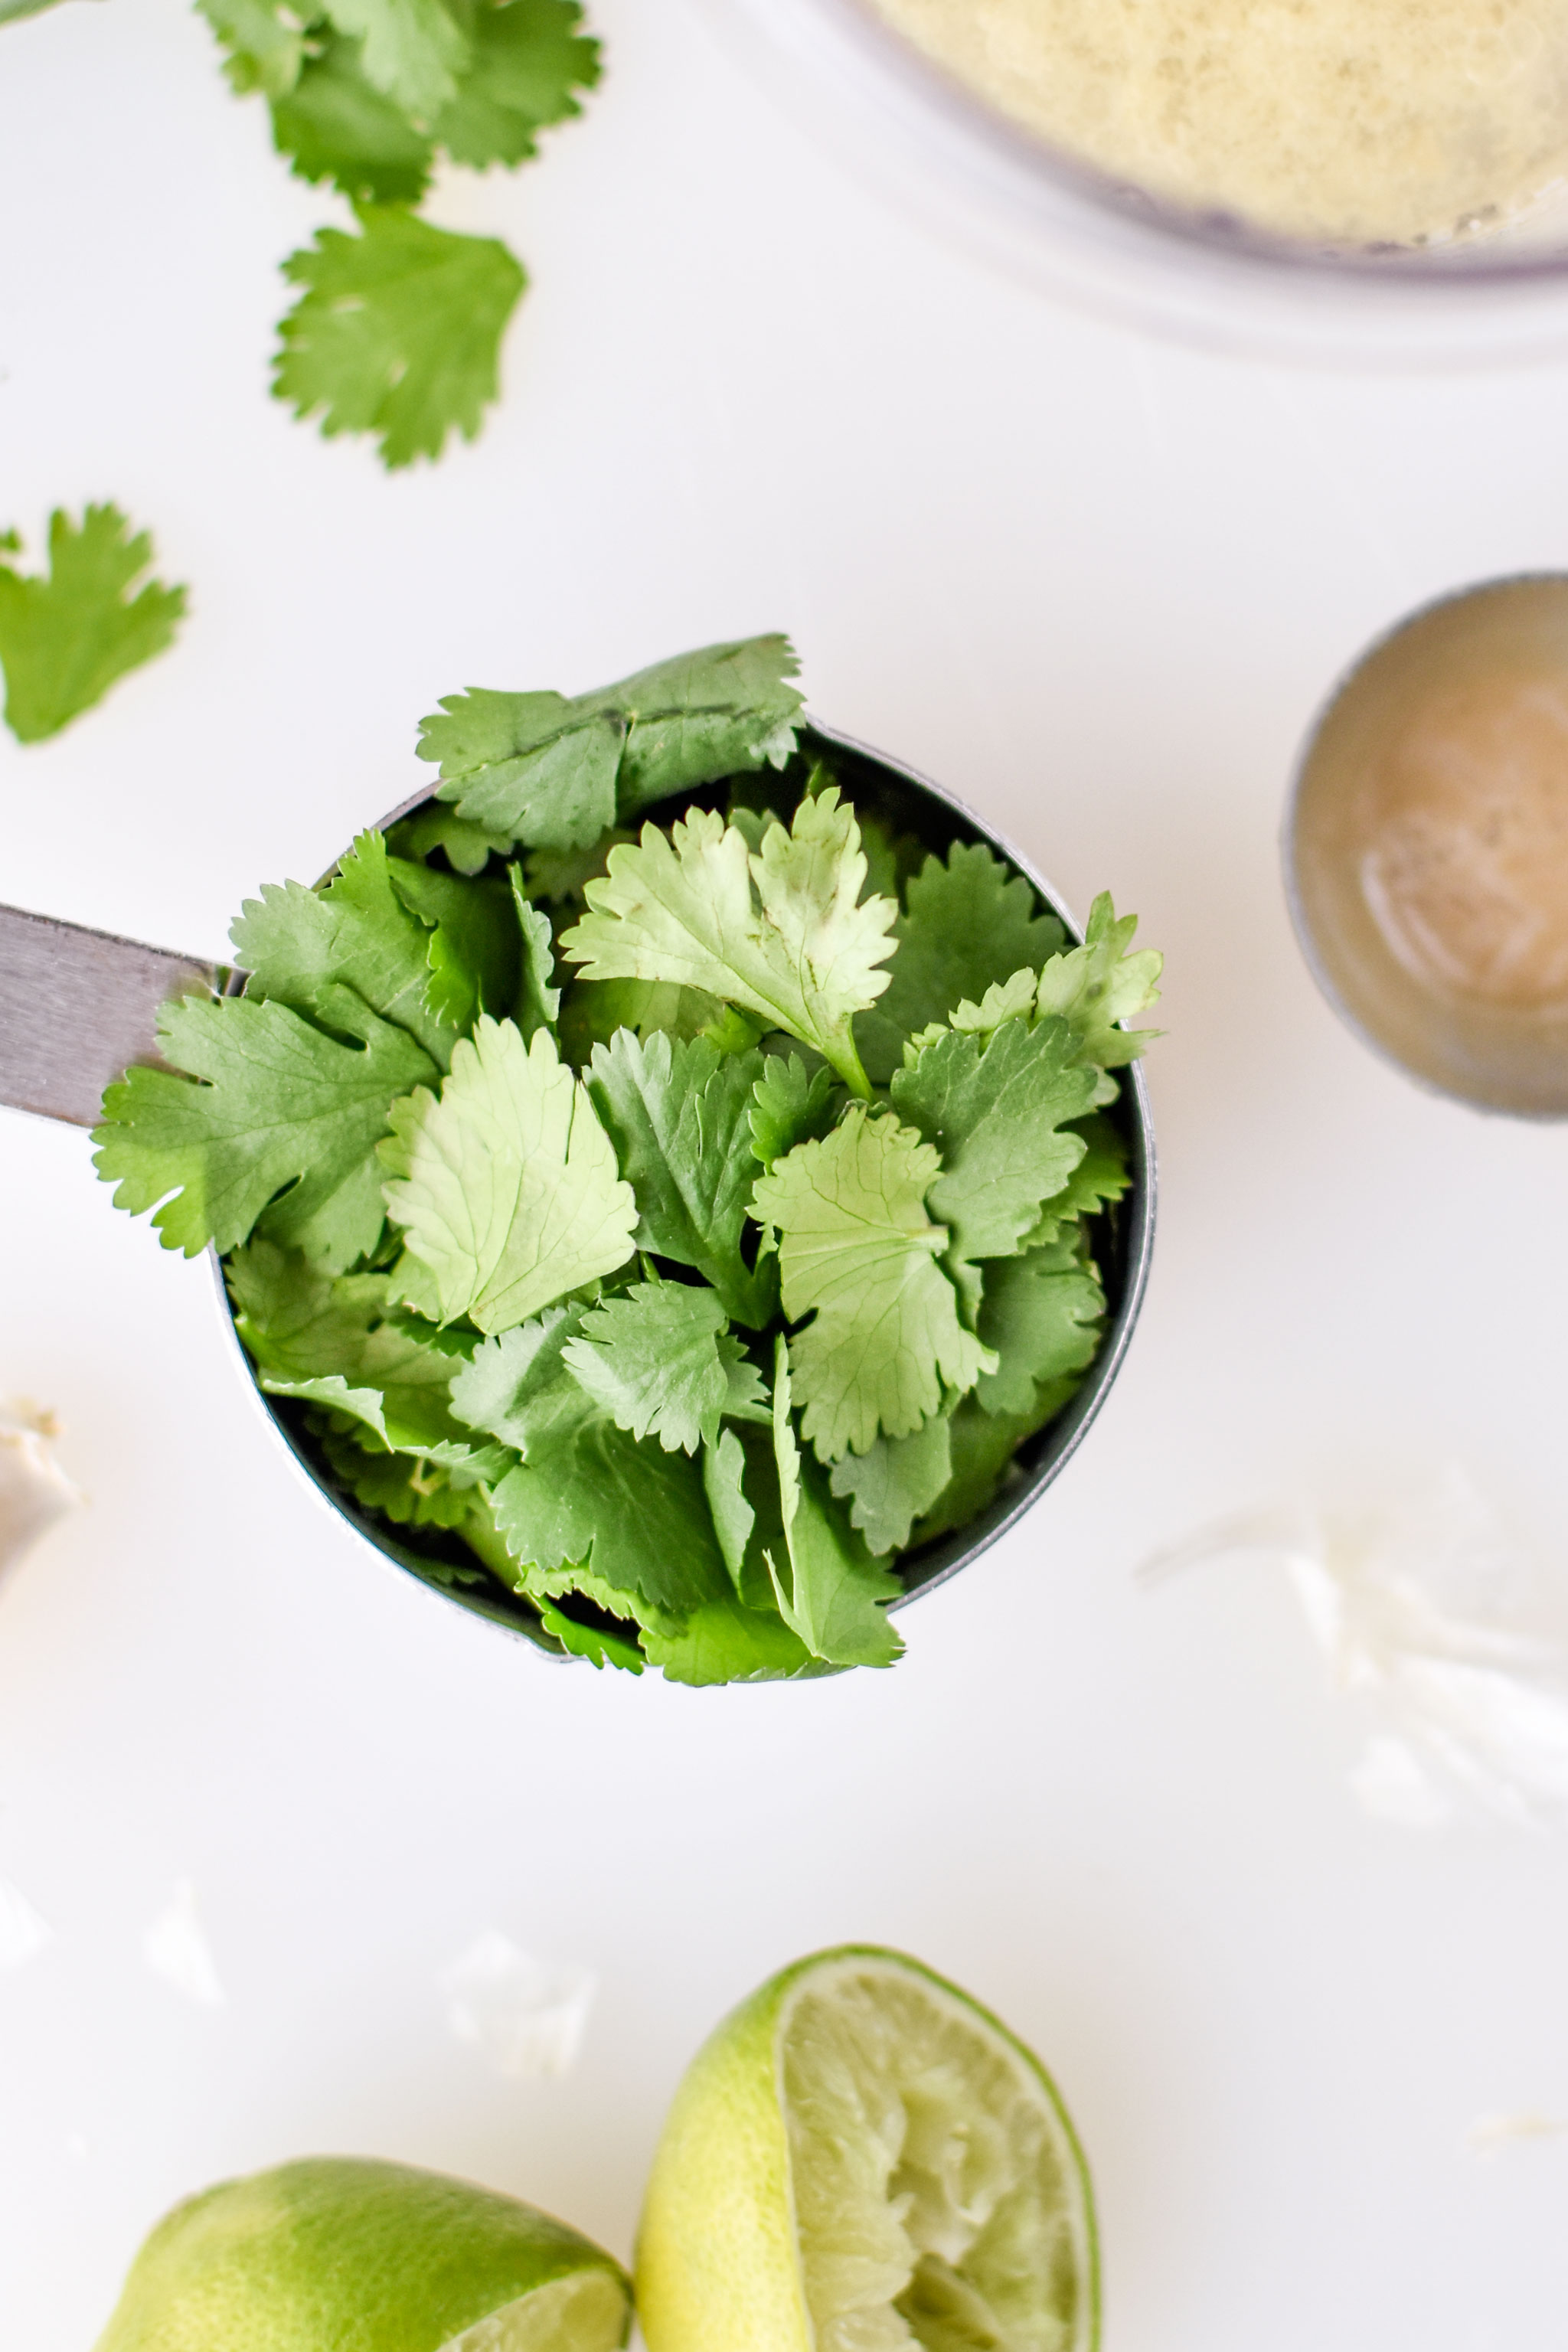 Cilantro ready to be used in the cilantro lime tahini dressing